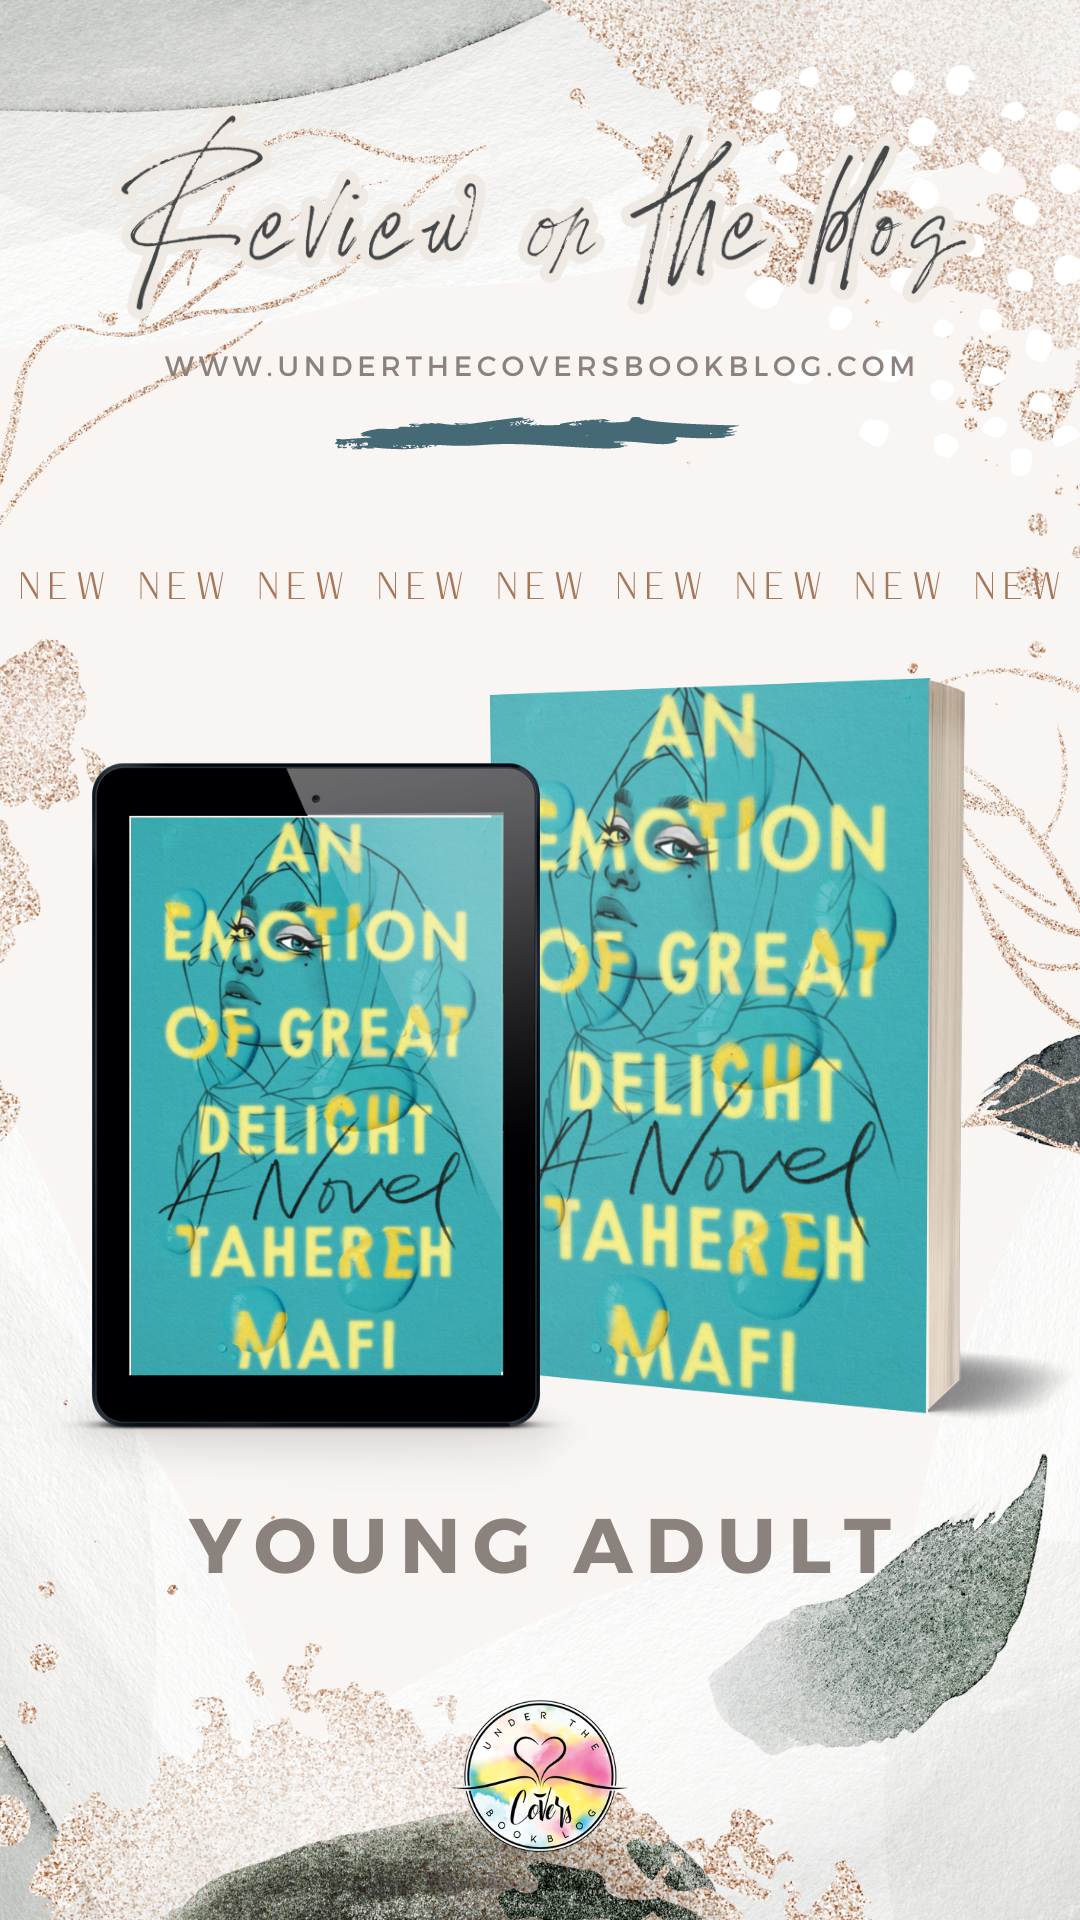 ARC Review: An Emotion of Great Delight by Tahereh Mafi